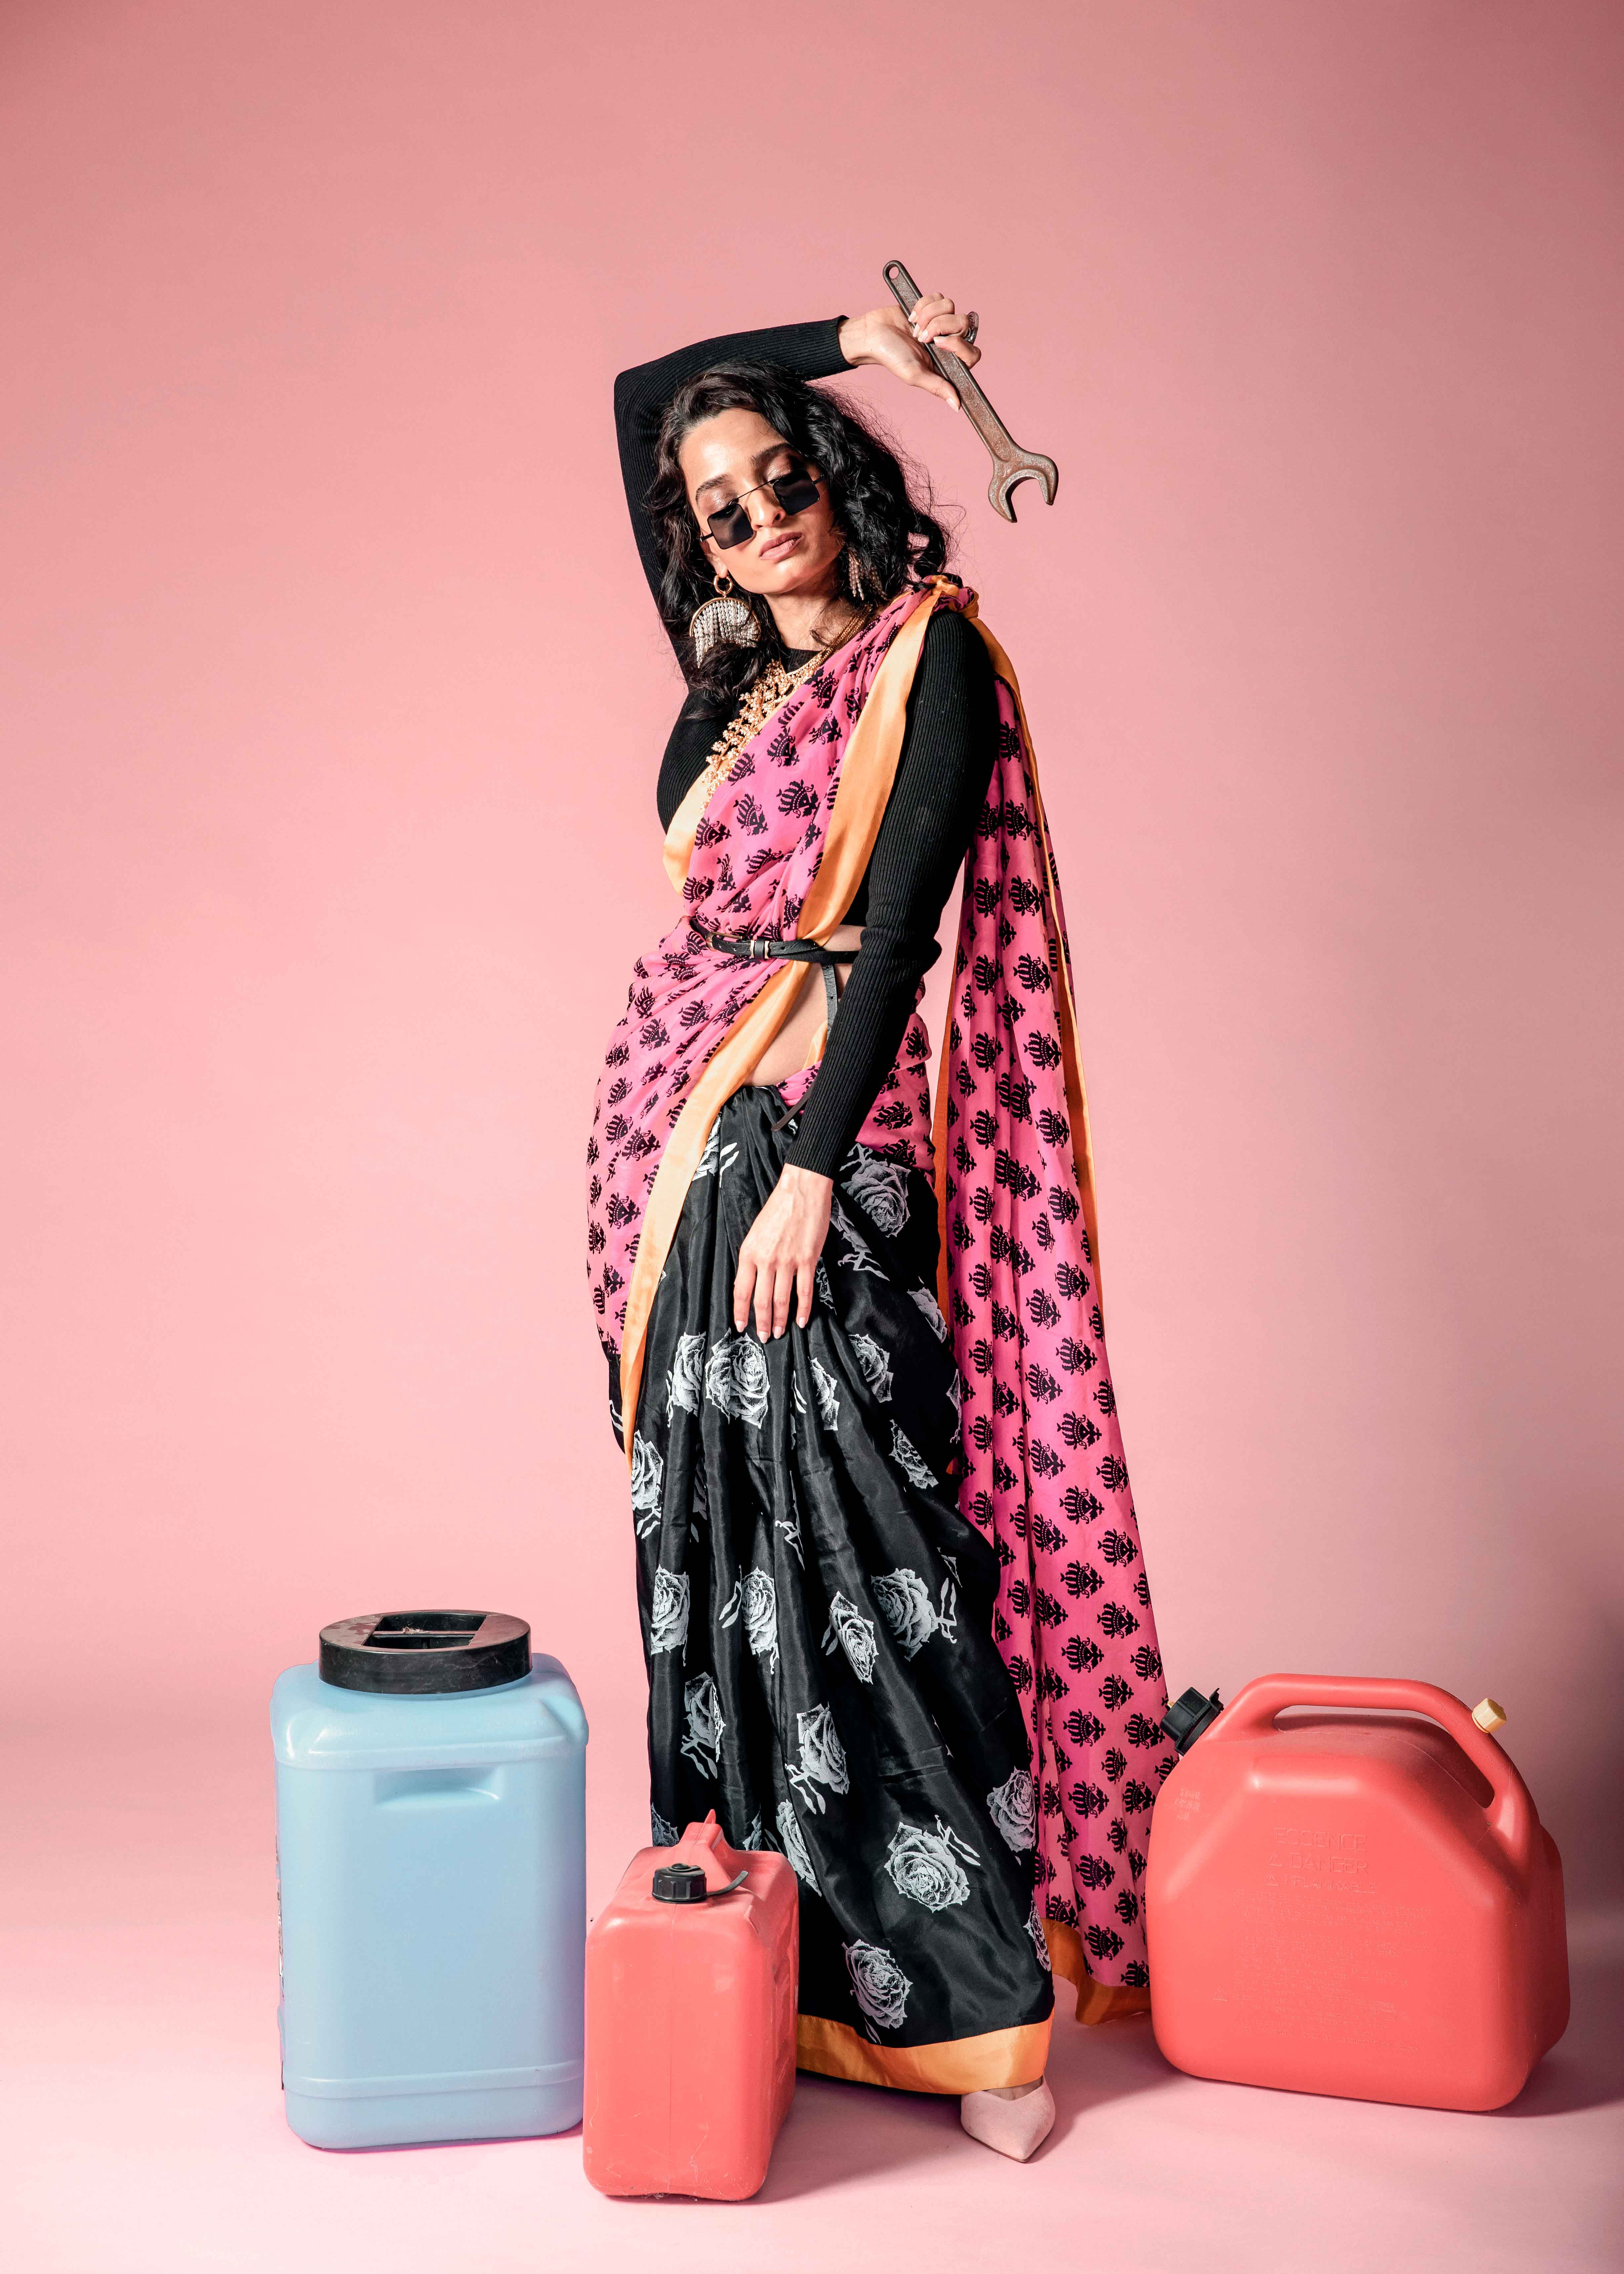 Pink and black designer saree Indian outfit portrait with sunglasses and chandelier peal statement earrings in studio photography with pink background